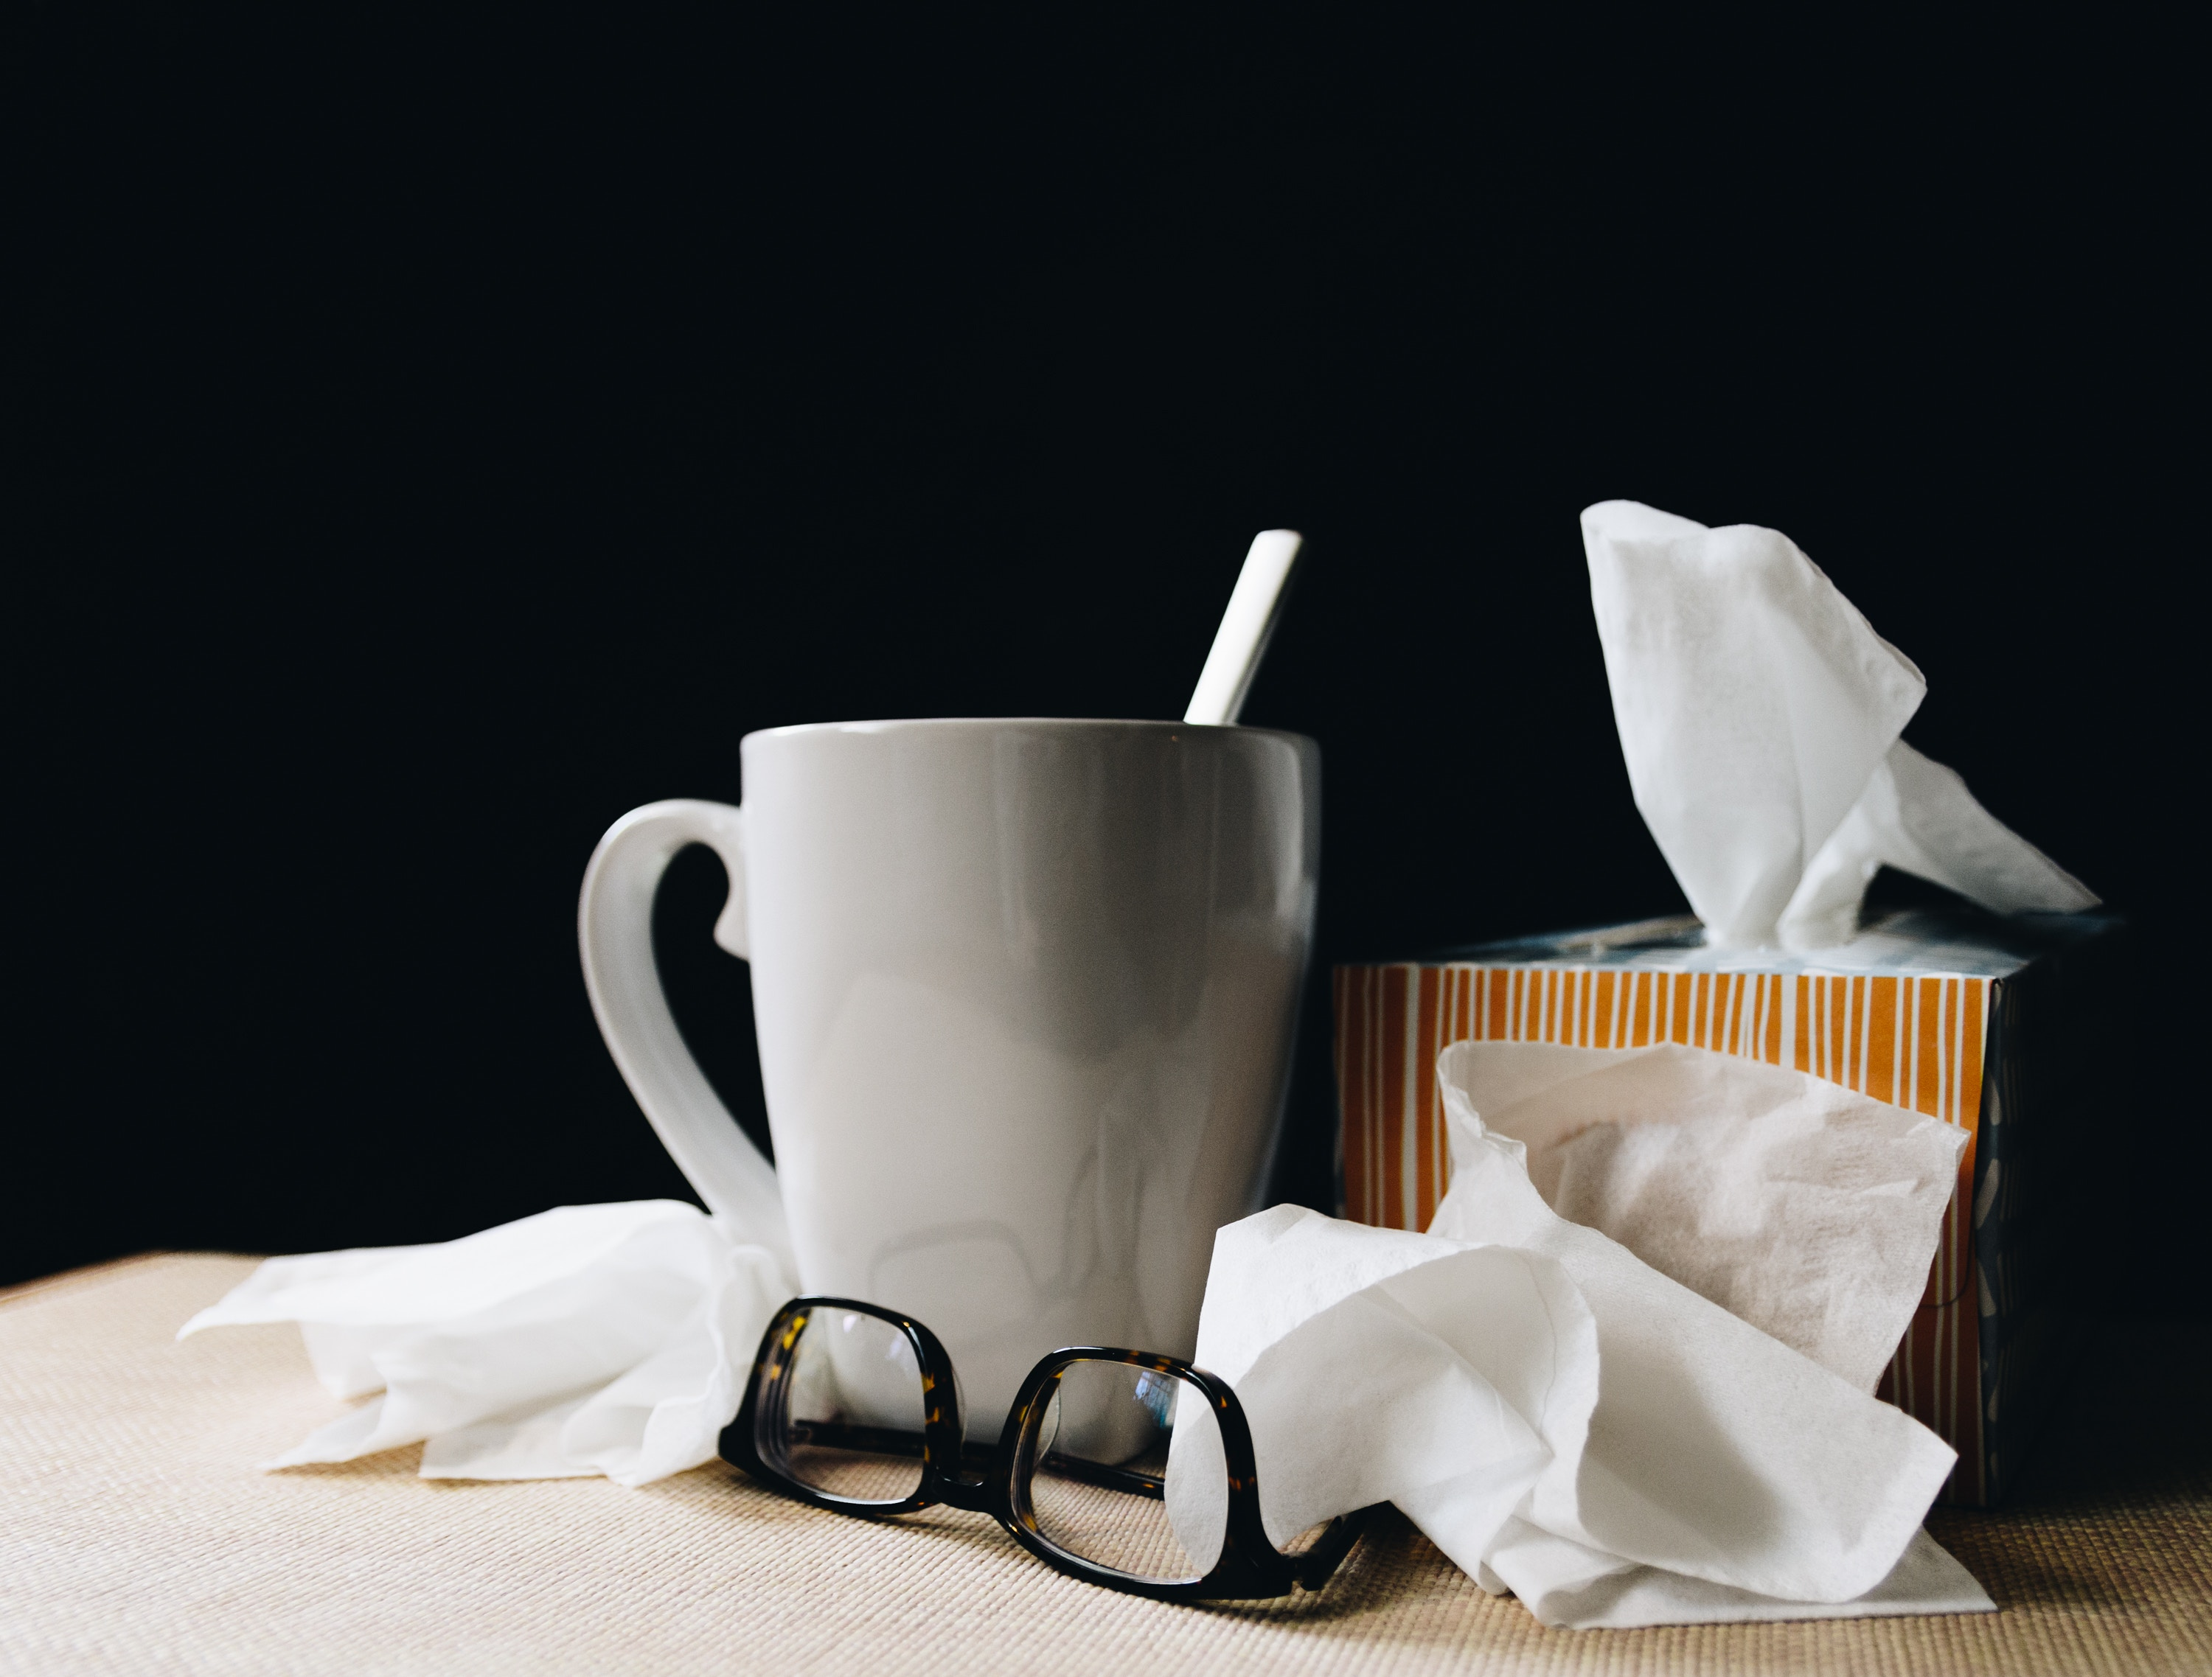 Preventing Illness in the Workplace